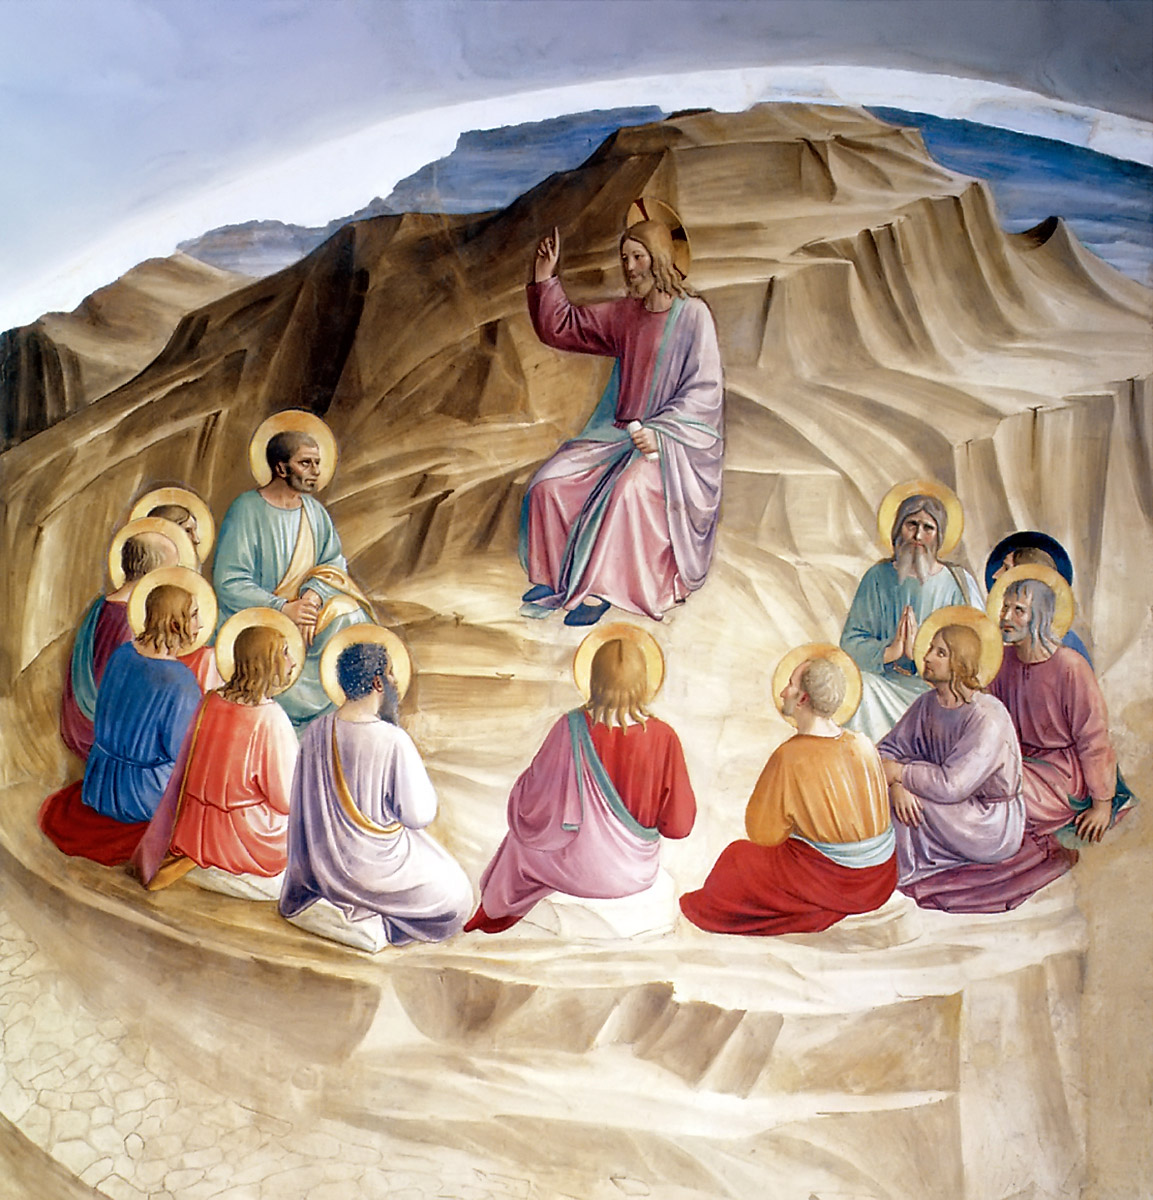 The Sermon on the Mount Fra Angelico, c. 1440